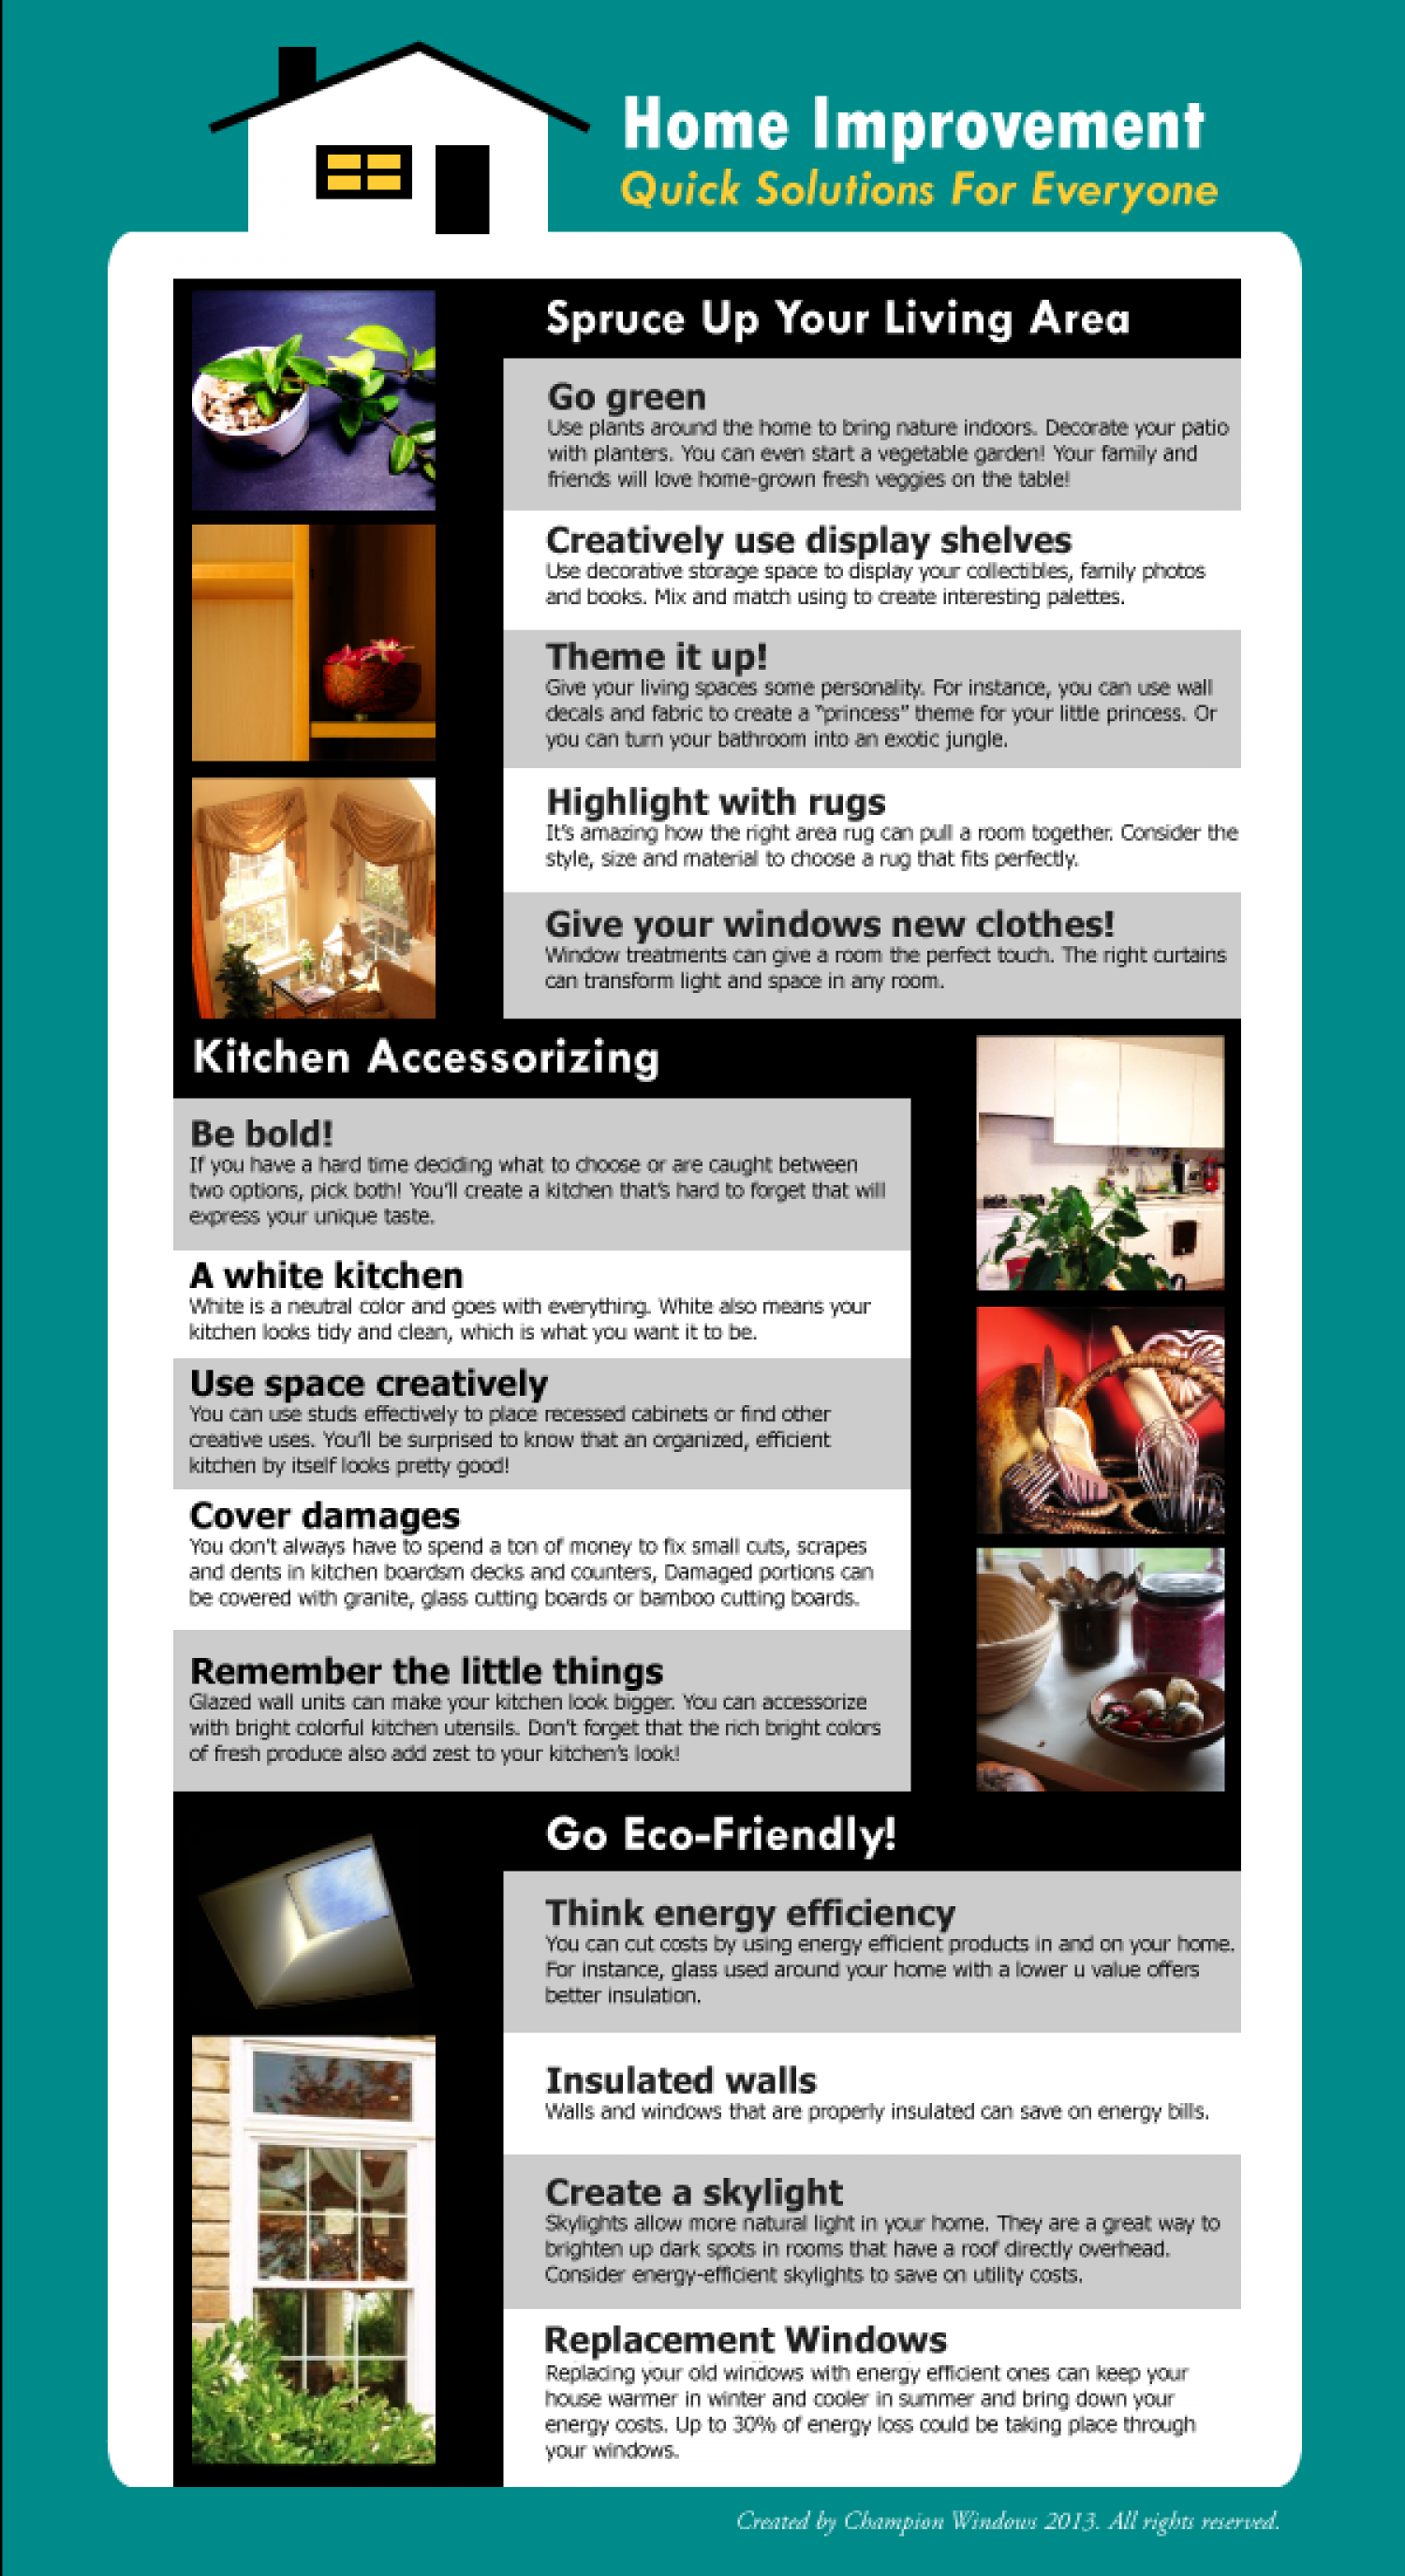 Home Improvement Infographics - Quick Solutions for Everyone! Infographic